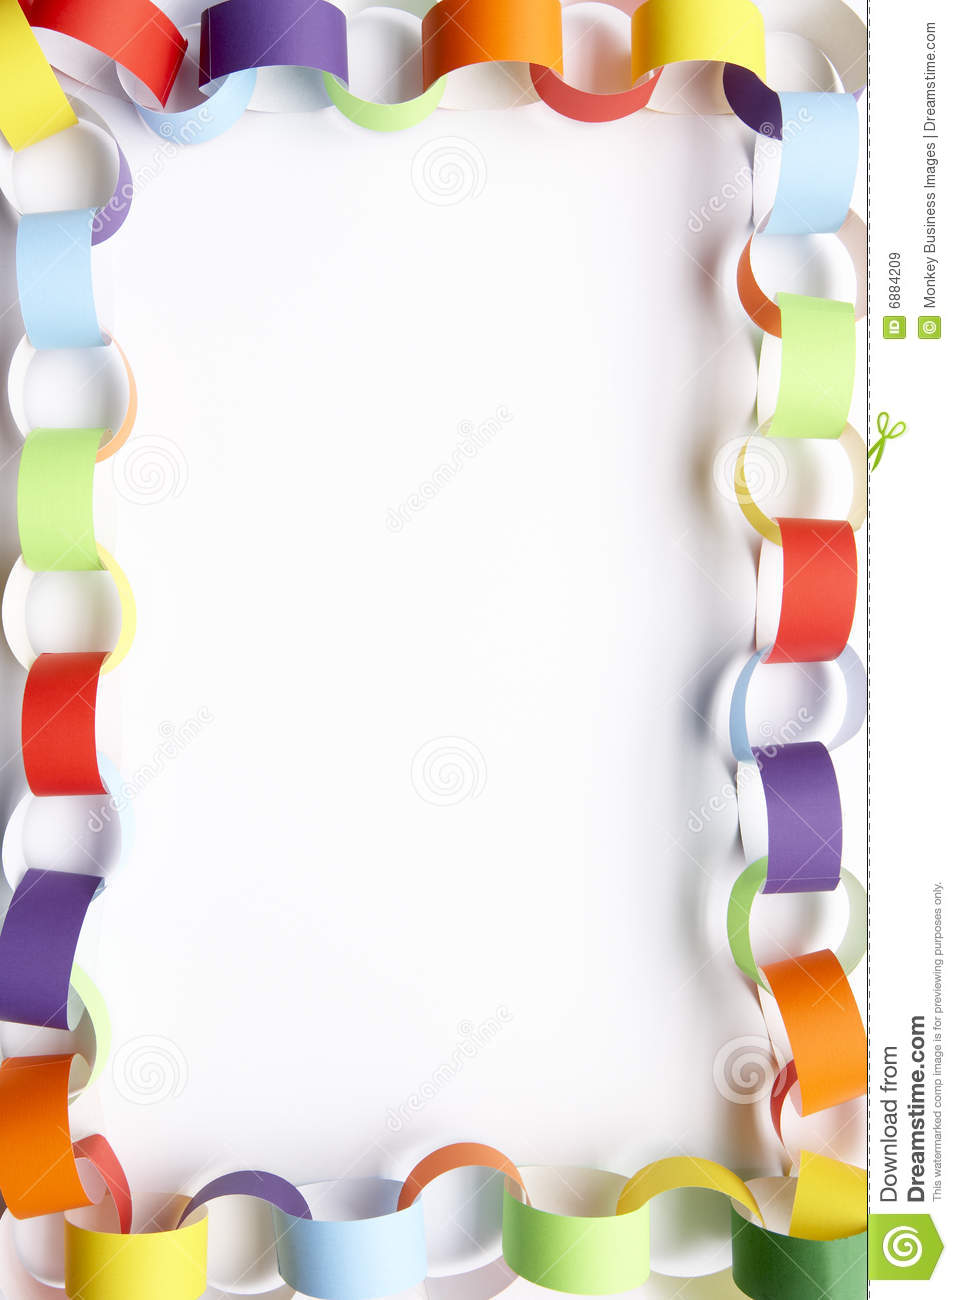 Border Made From Paper Chains Royalty Free Stock Images - Image ...